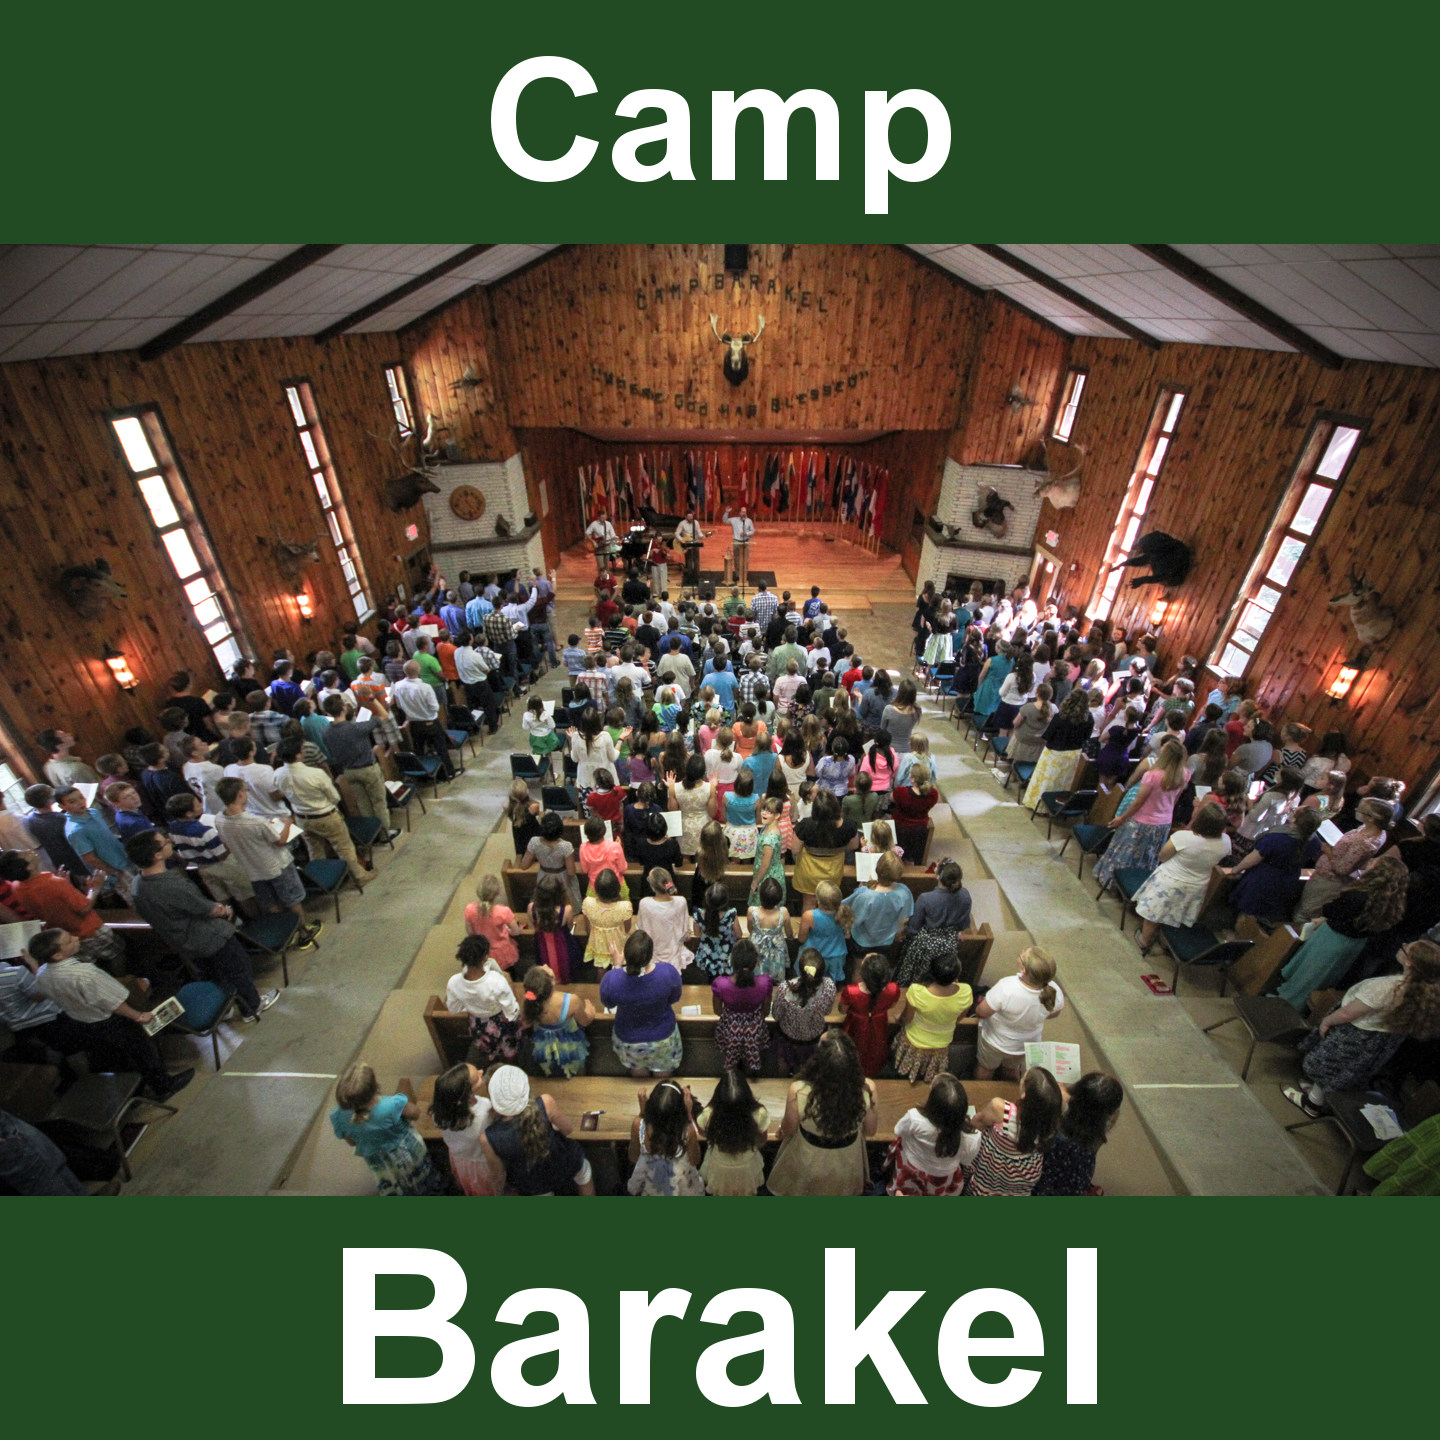 Camp Barakel Chapel Podcasts